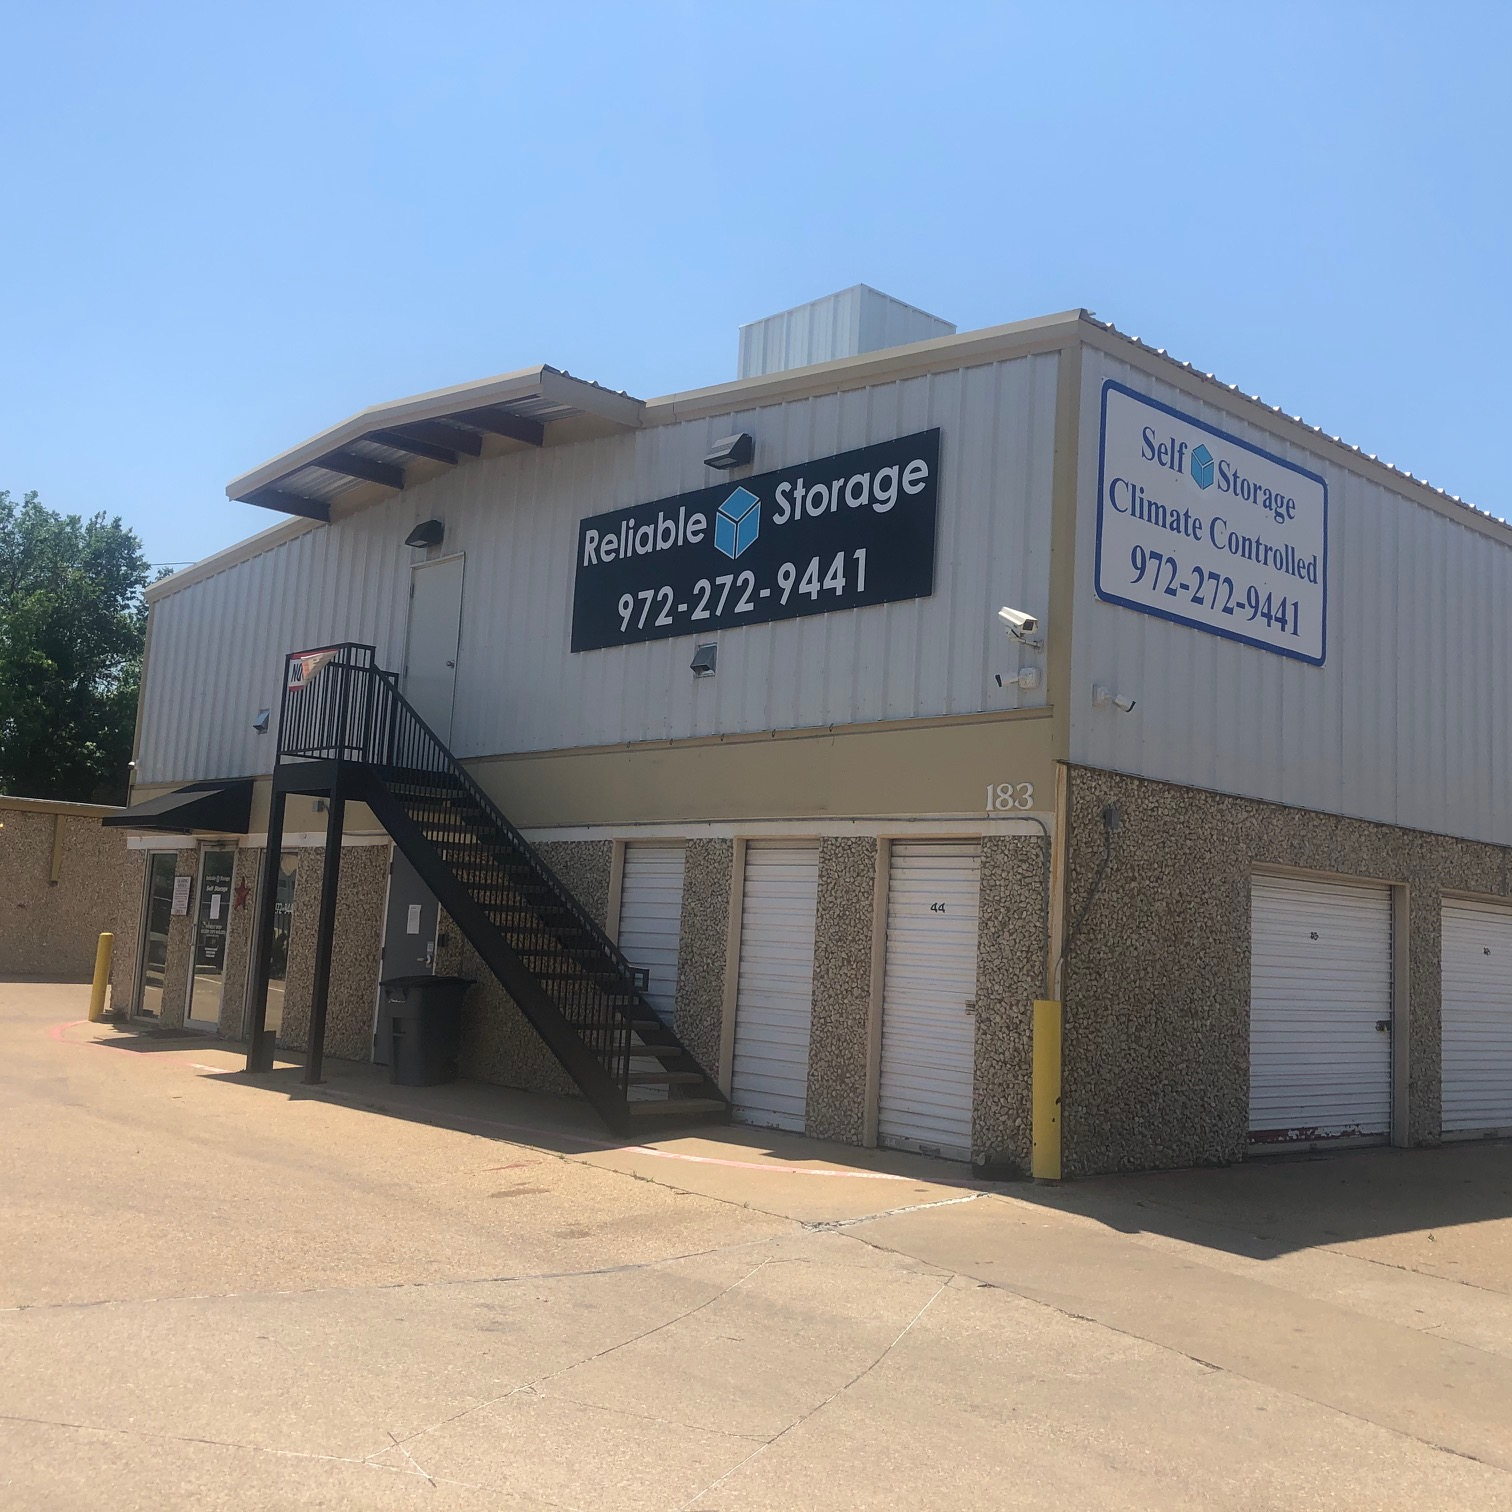 self storage and climate controlled storage in garland, tx